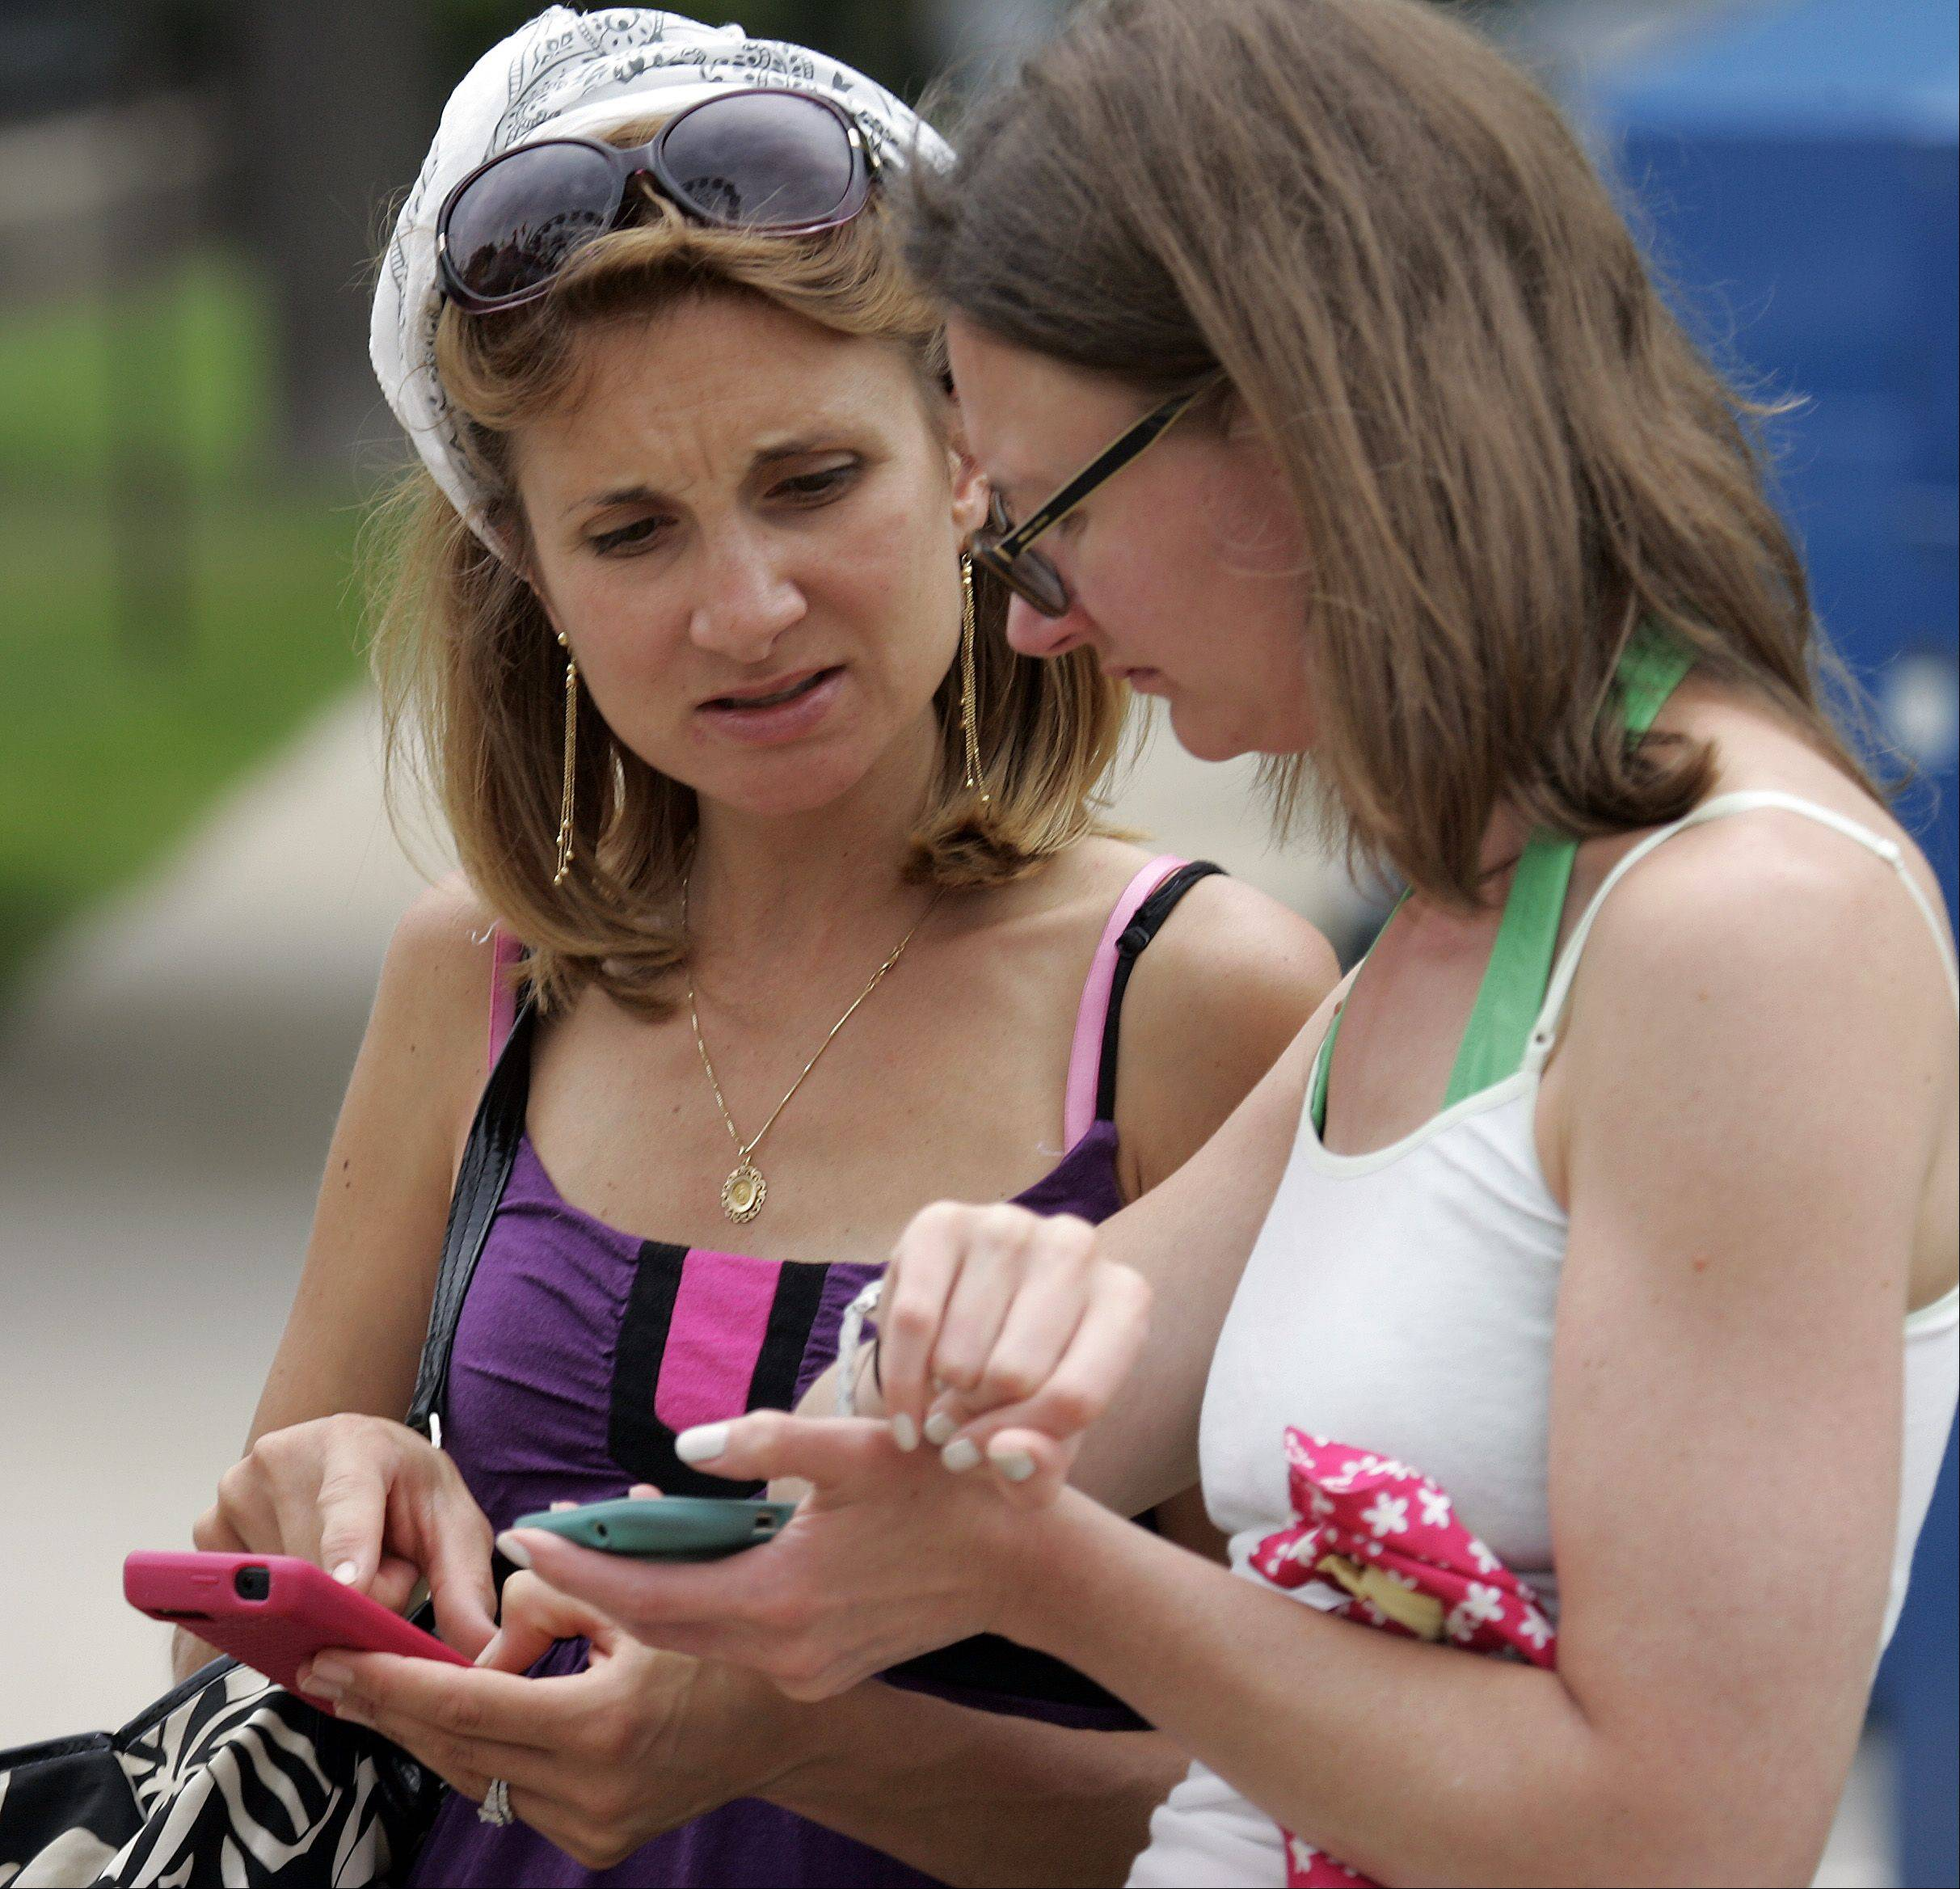 Vanessa Maloney of Geneva and her sister-in-law Sheila Stephenson of Plano, Texas, look at weather reports of Friday afternoon's impending storm on their smartphones at Swedish Days in Geneva.